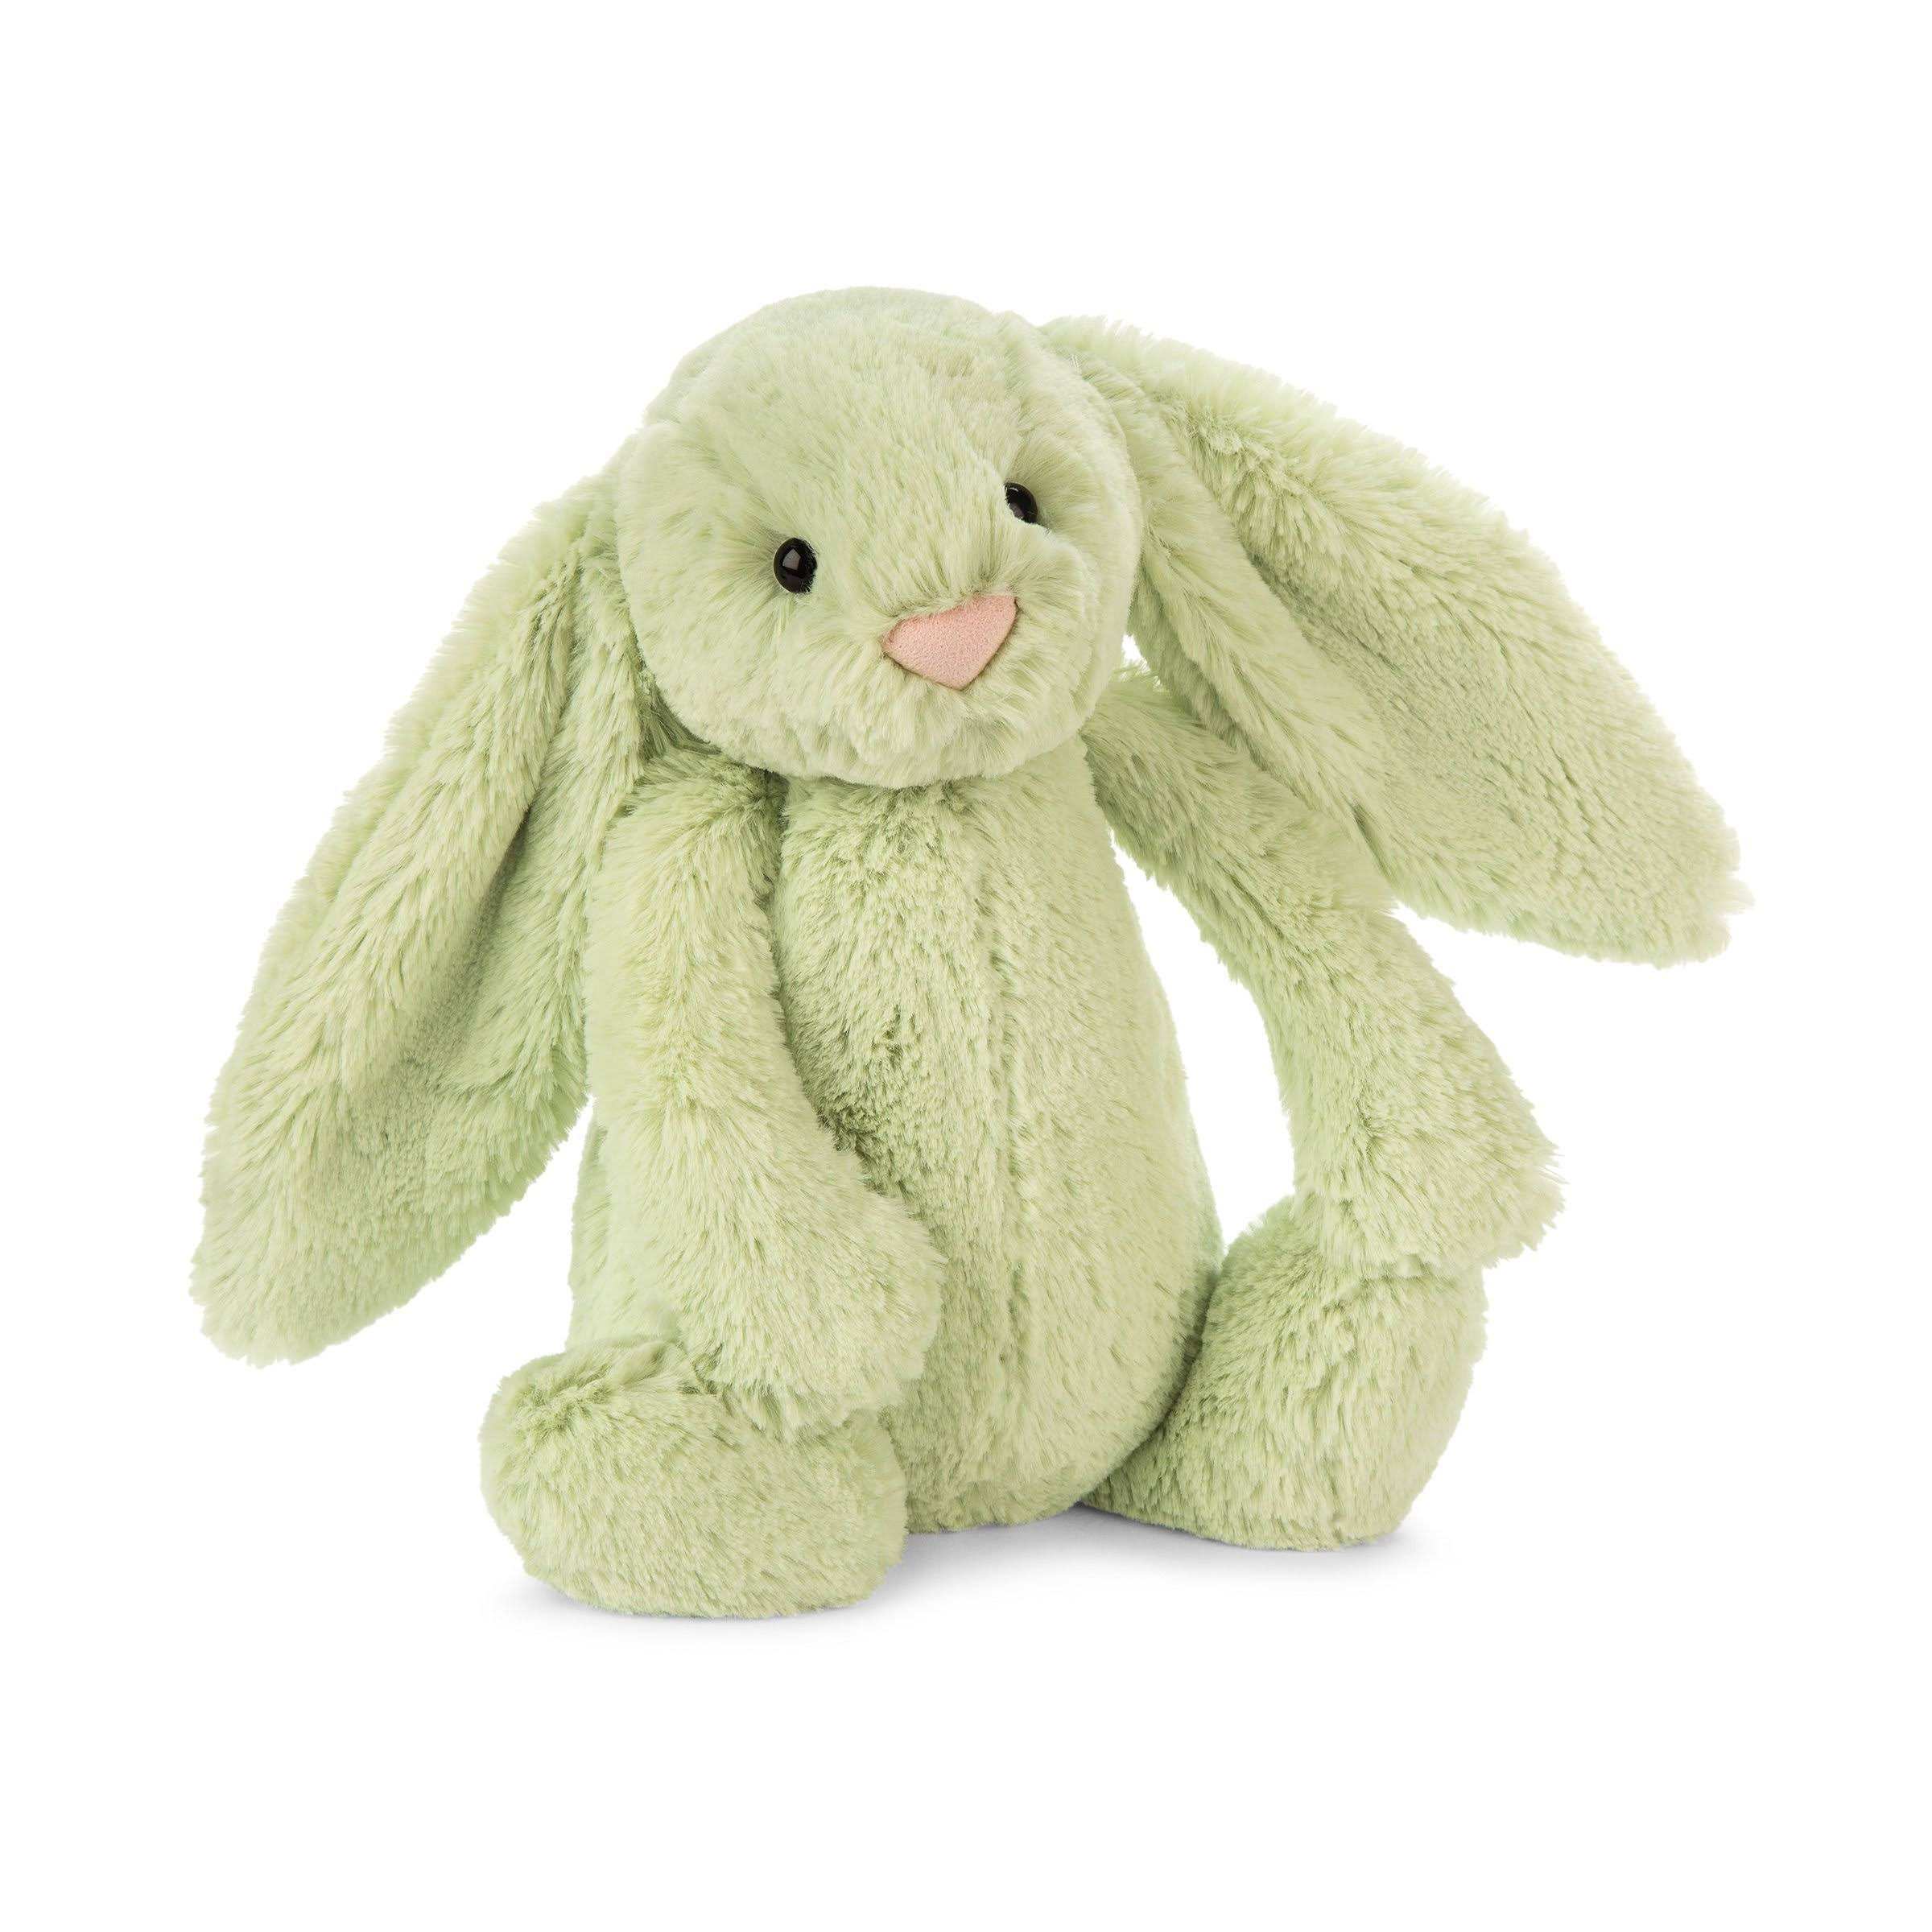 Jellycat Bashful Kiwi Bunny Stuffed Animal Medium